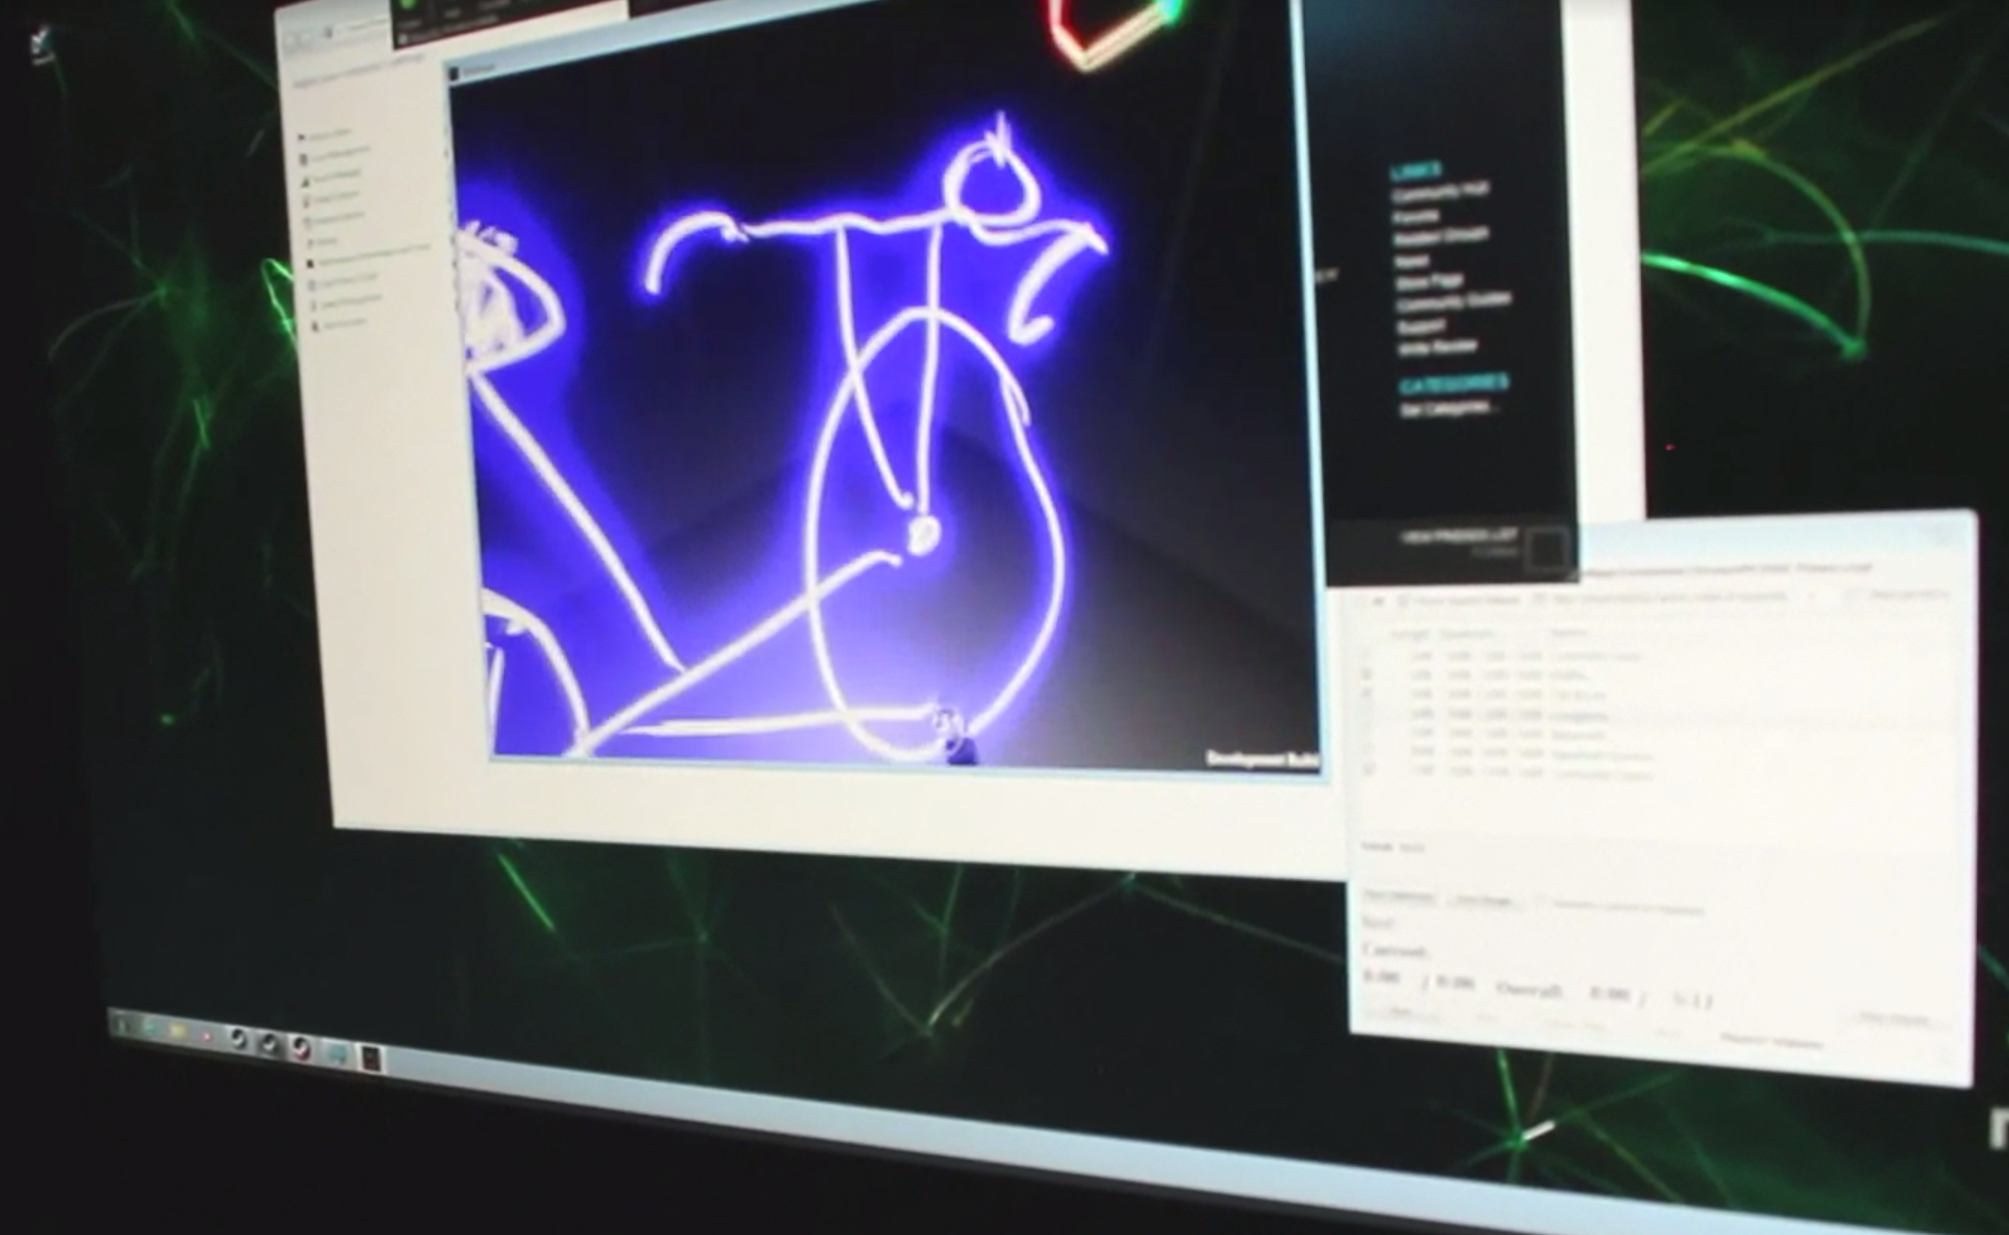 Sam Machkovech draws a bicycle in 3D using Tilt Brush.